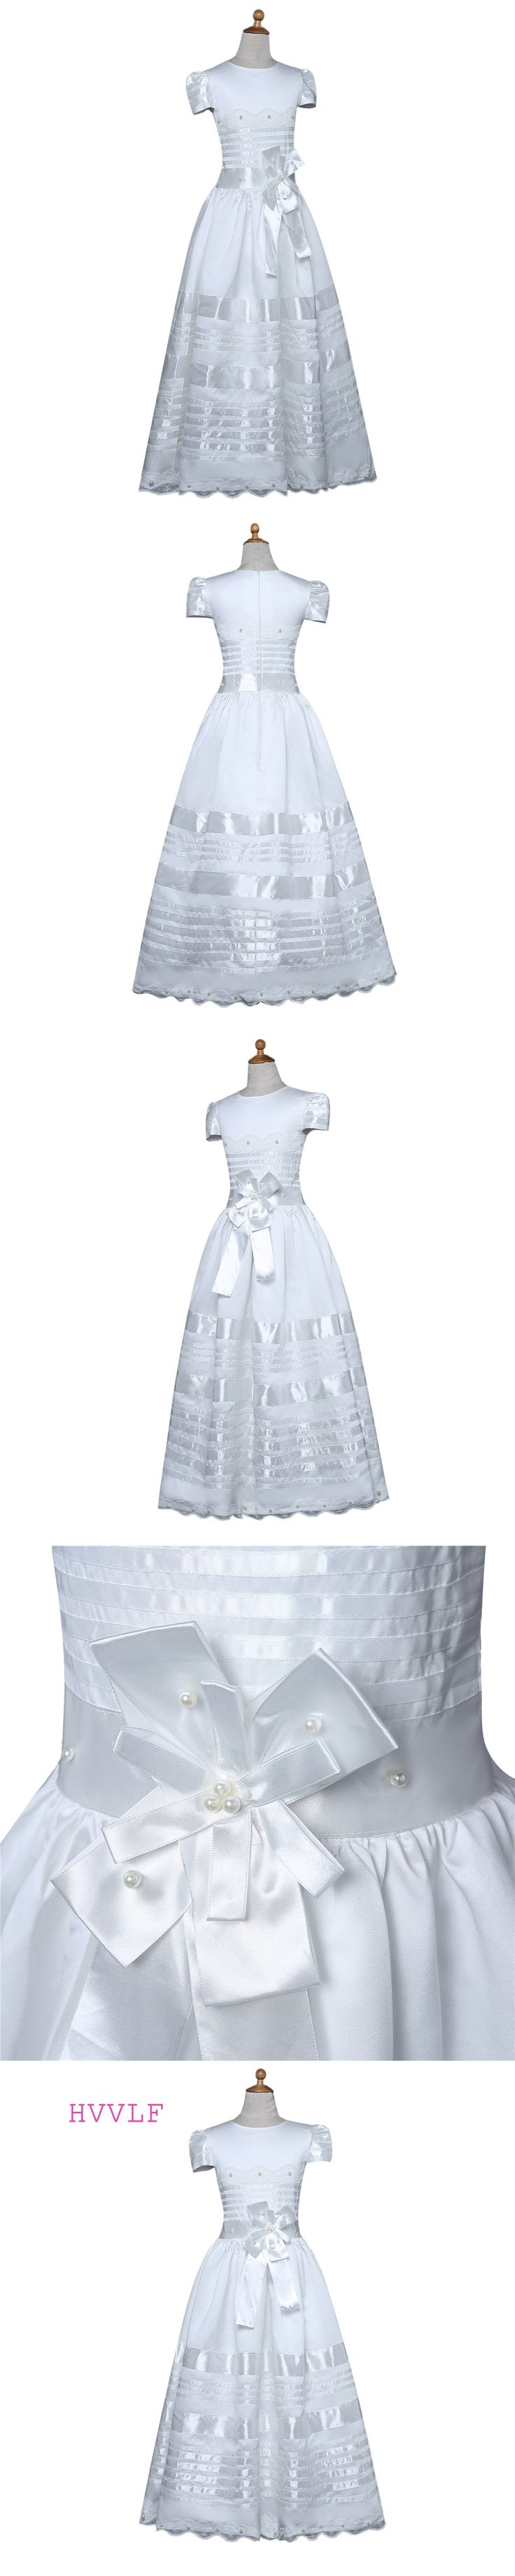 White 2018 Flower Girl Dresses For Weddings A-line Cap Sleeves Lace Bow Pearls First Communion Dresses For Little Girls